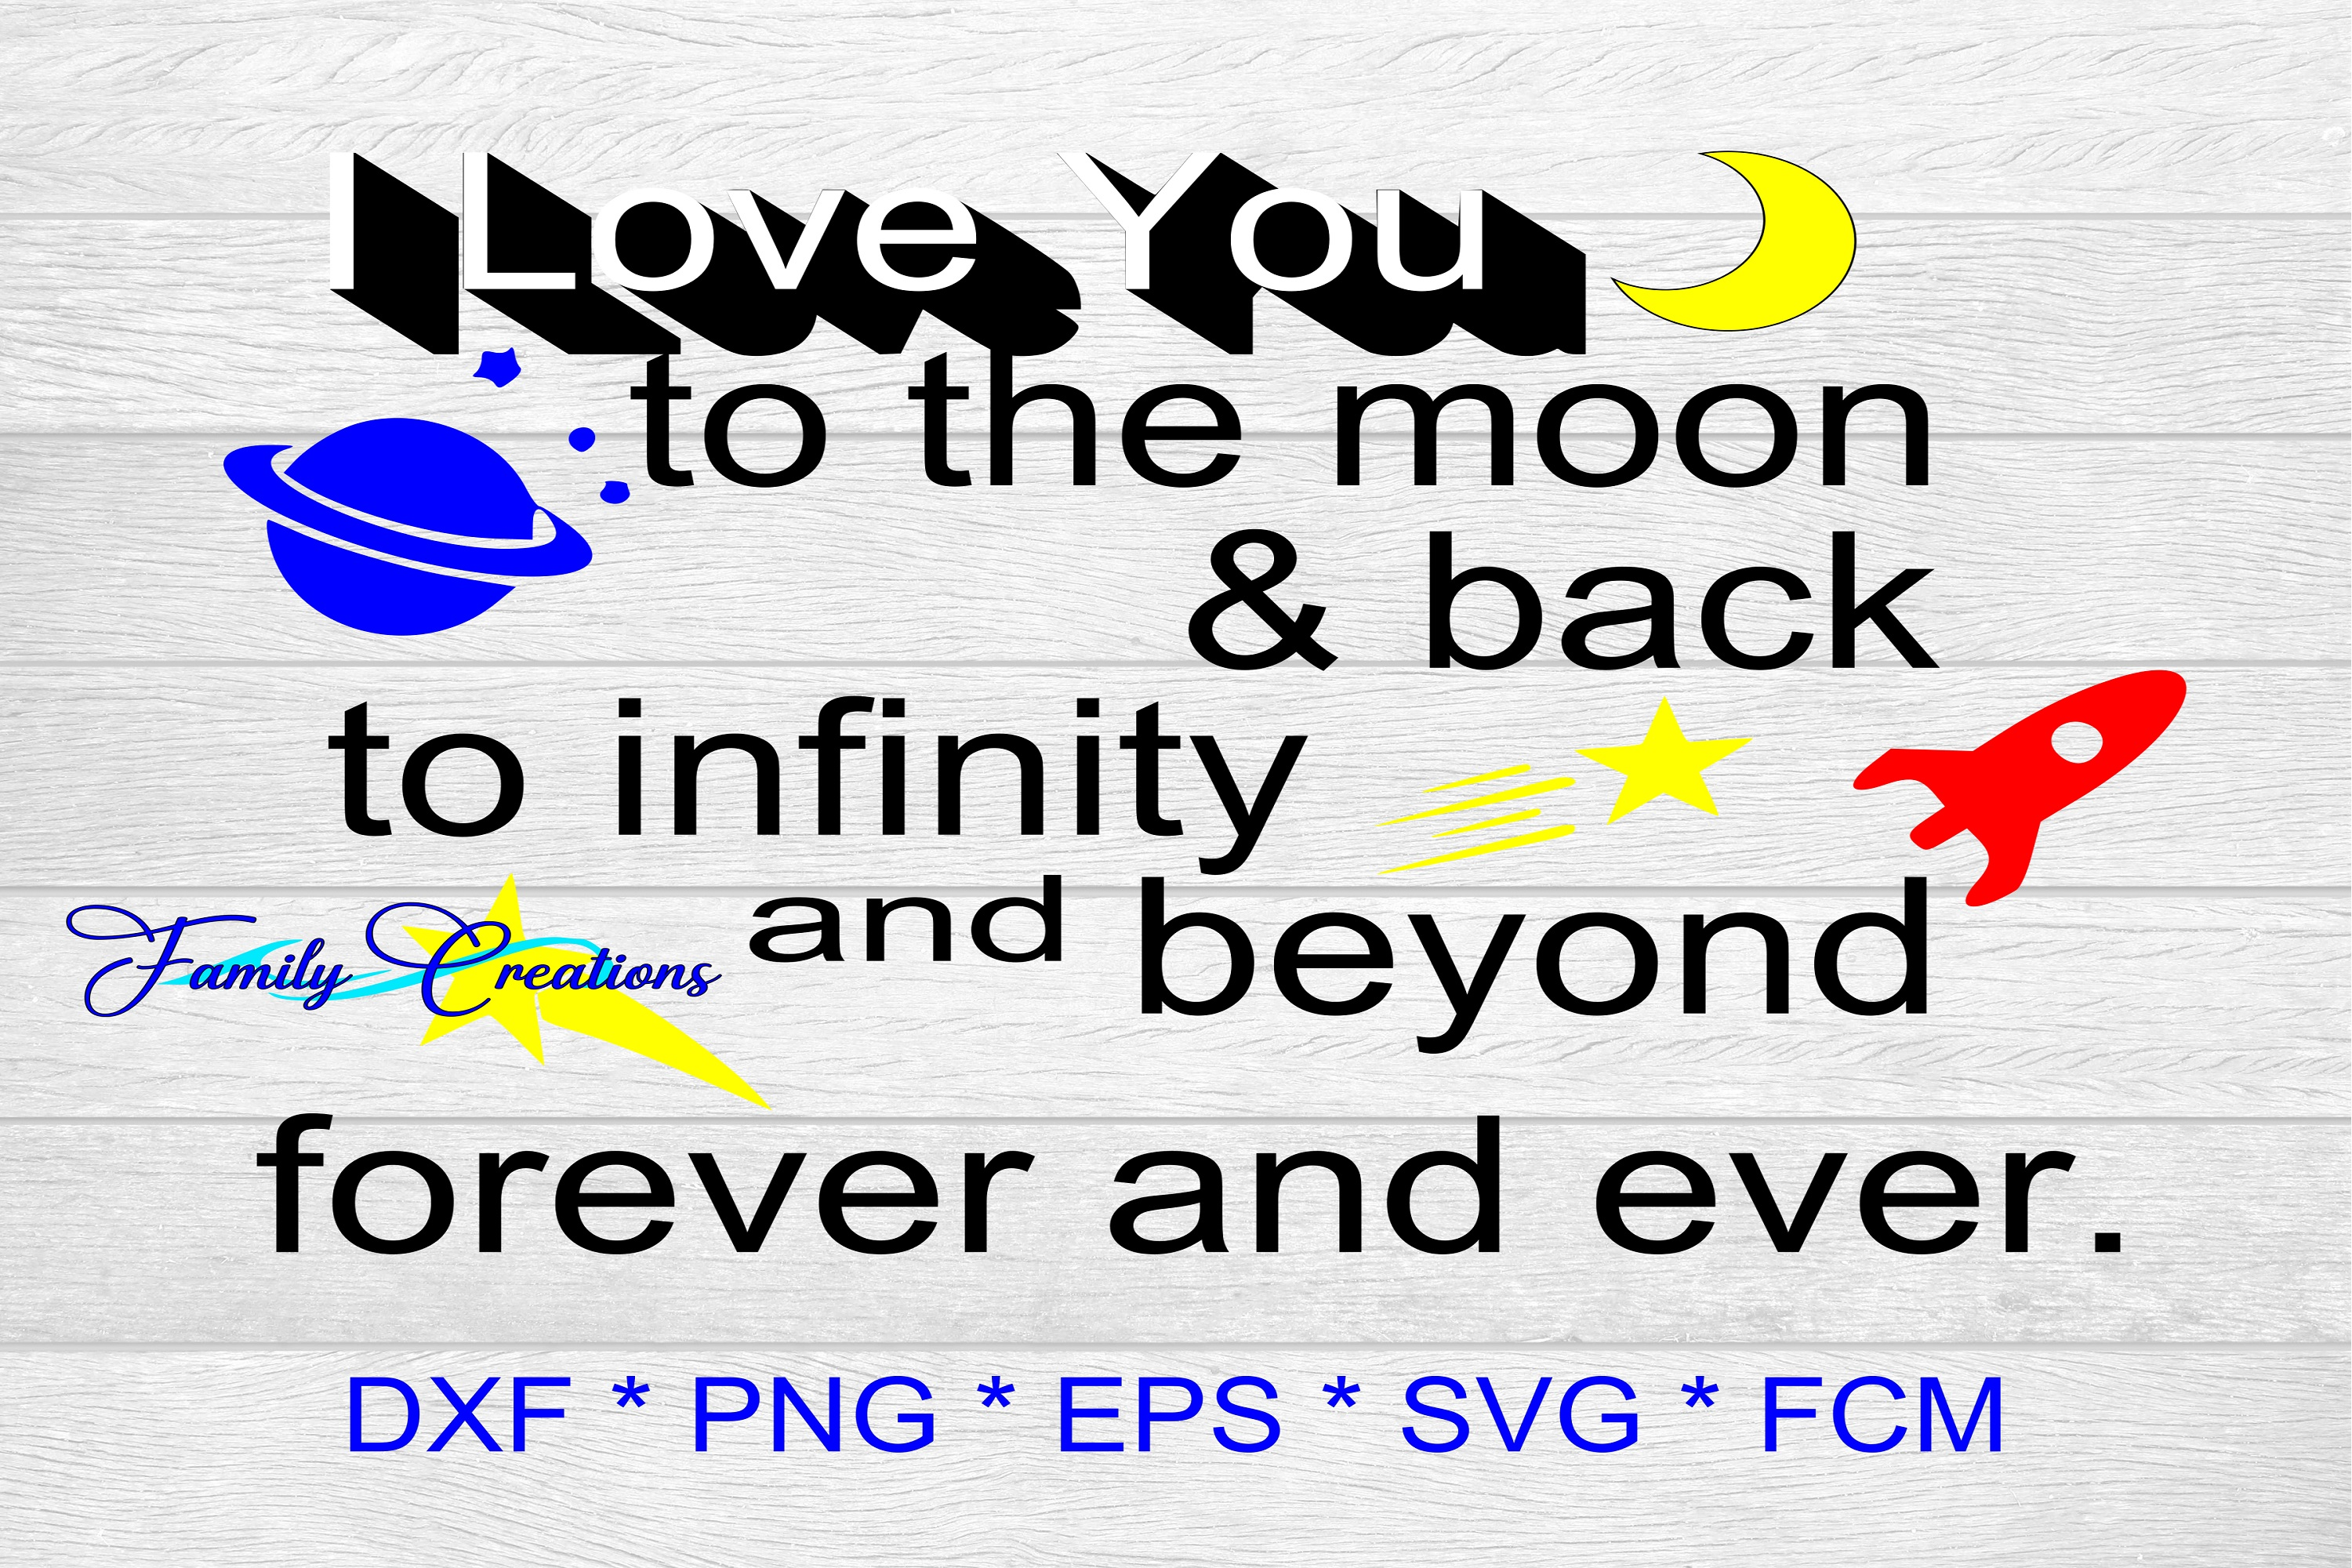 Download Free I Love You To The Moon And Back To Infinity And Beyond Forever And for Cricut Explore, Silhouette and other cutting machines.